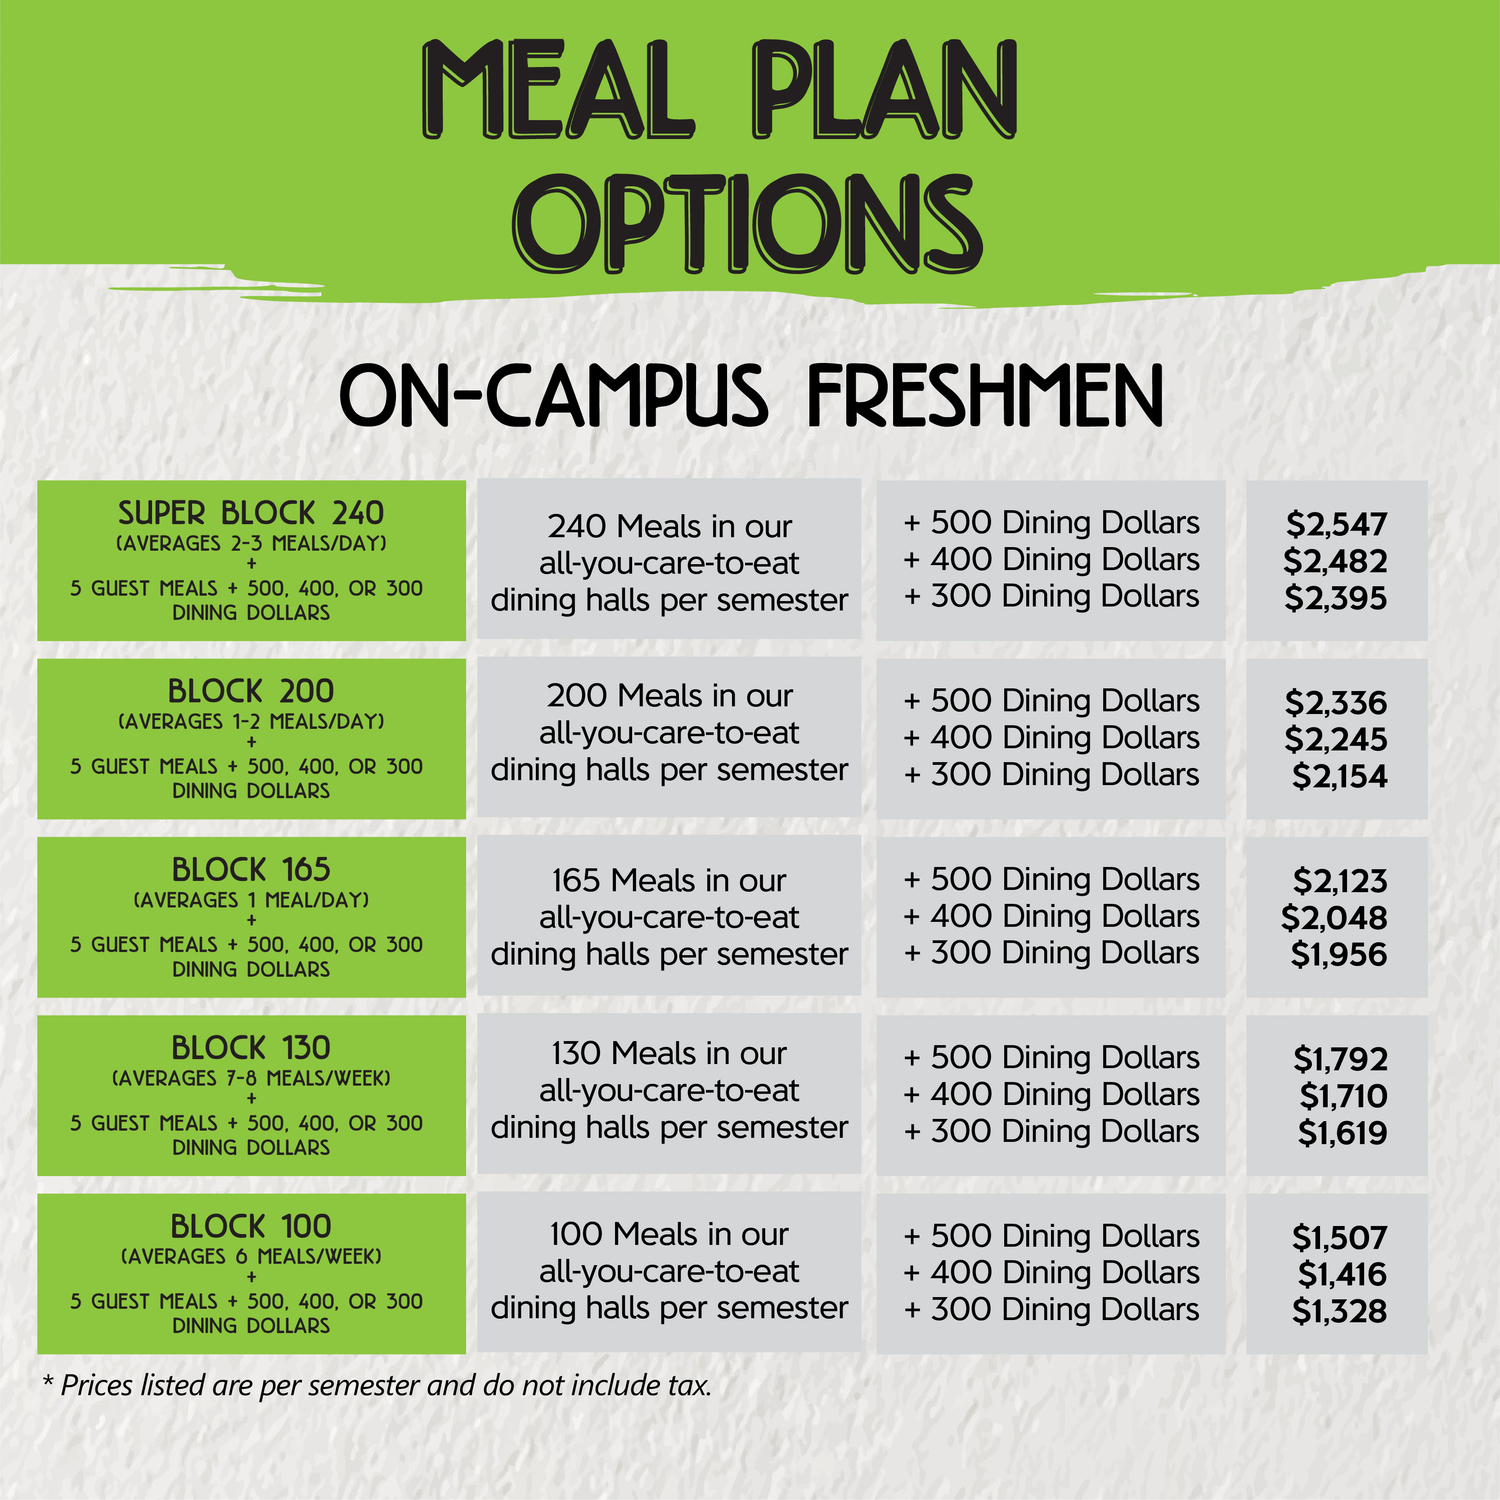 Dine On Campus at Texas A&M University || On Campus Freshmen